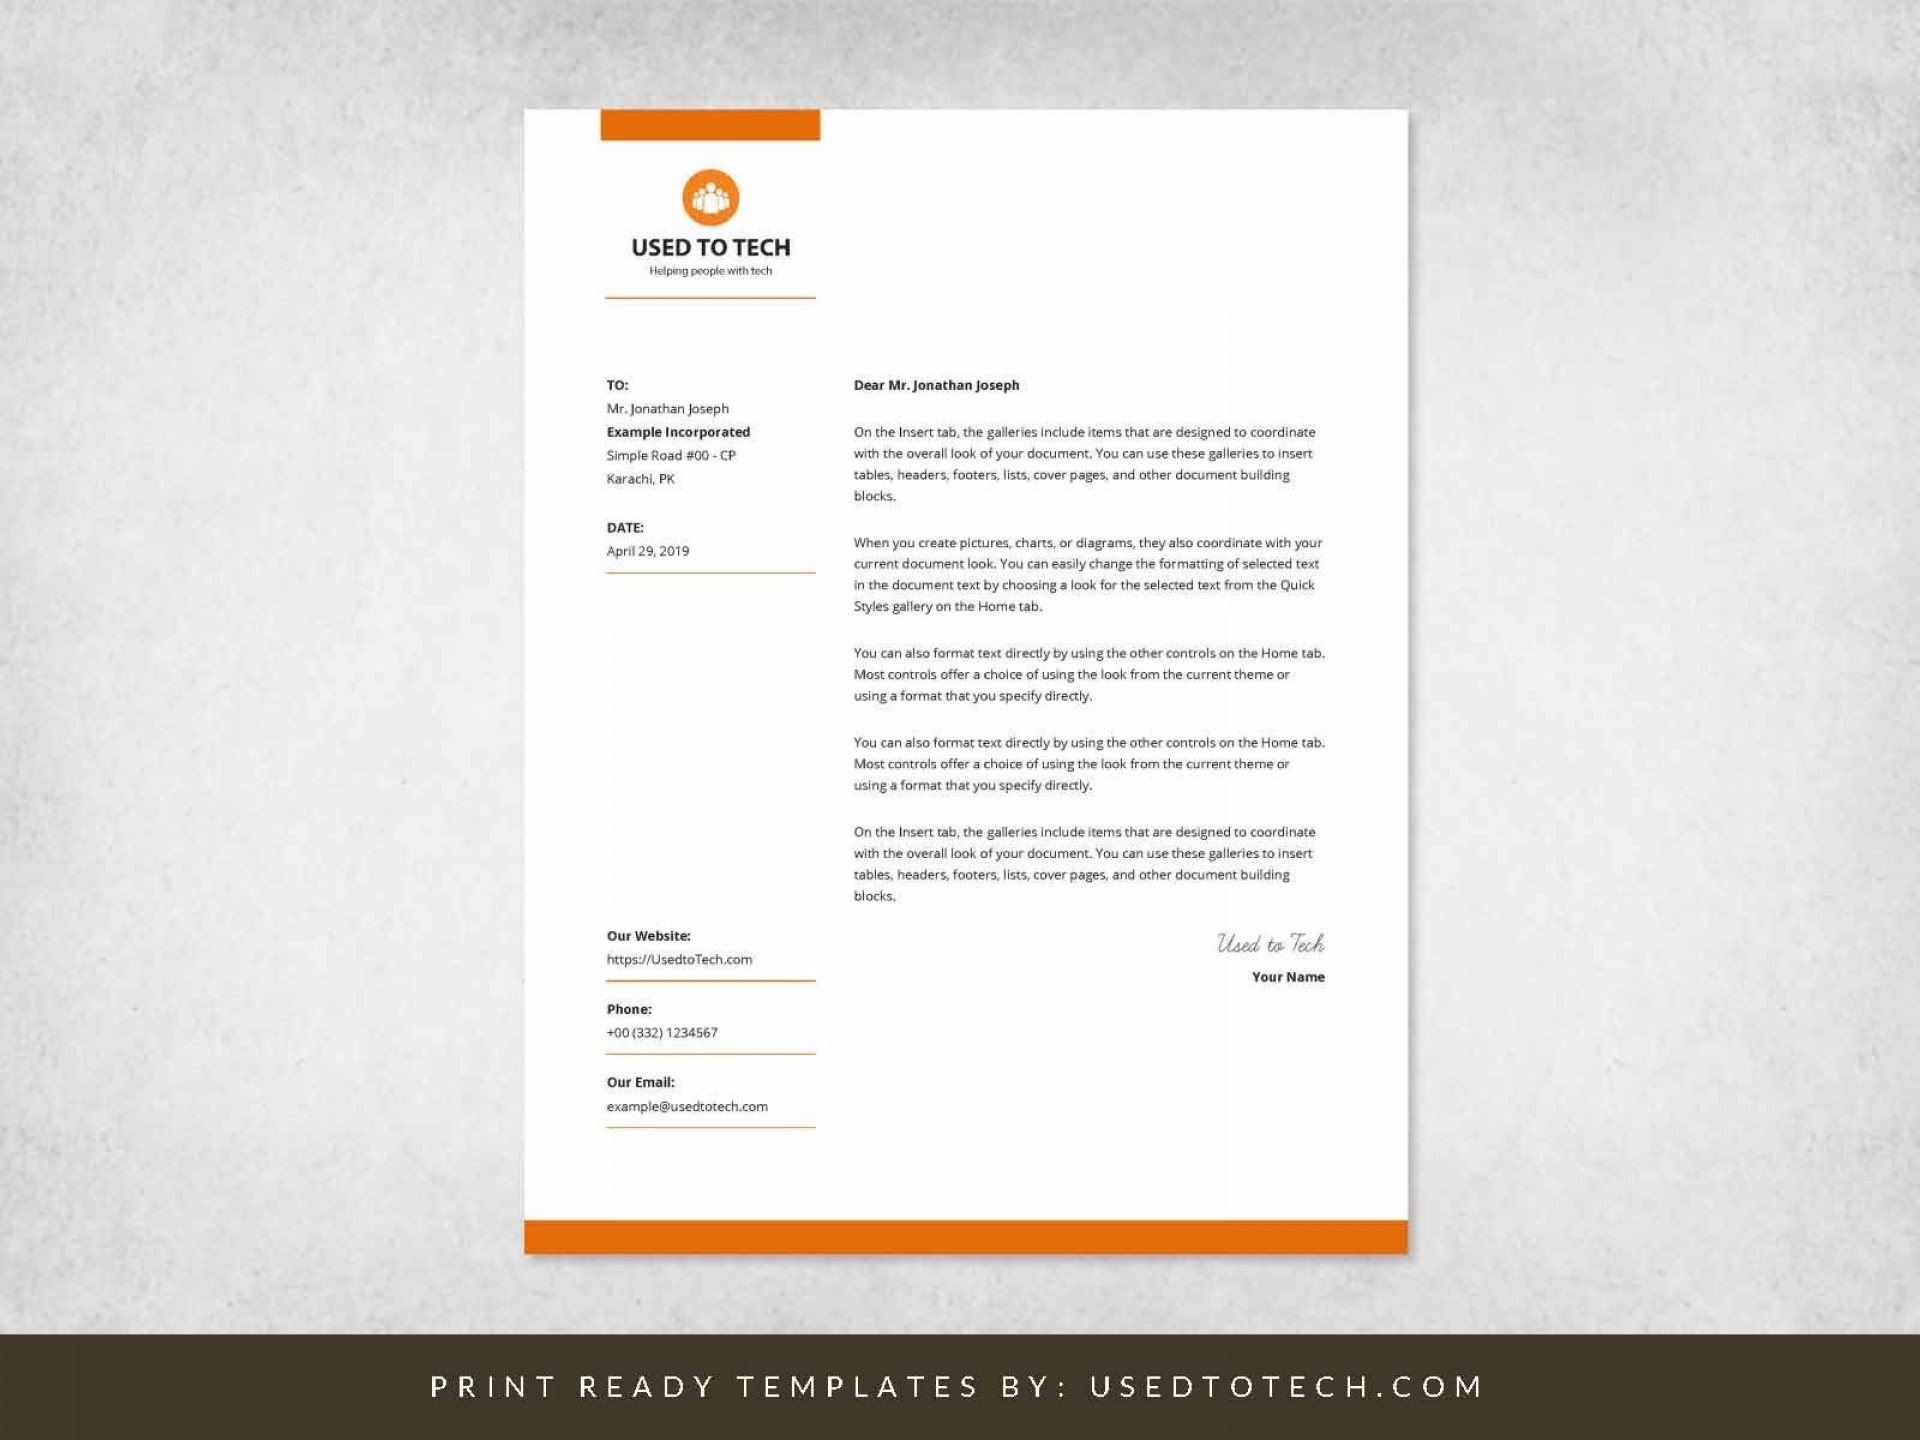 000 Best Simple Letterhead Format In Word Free Download Highest Clarity 1920